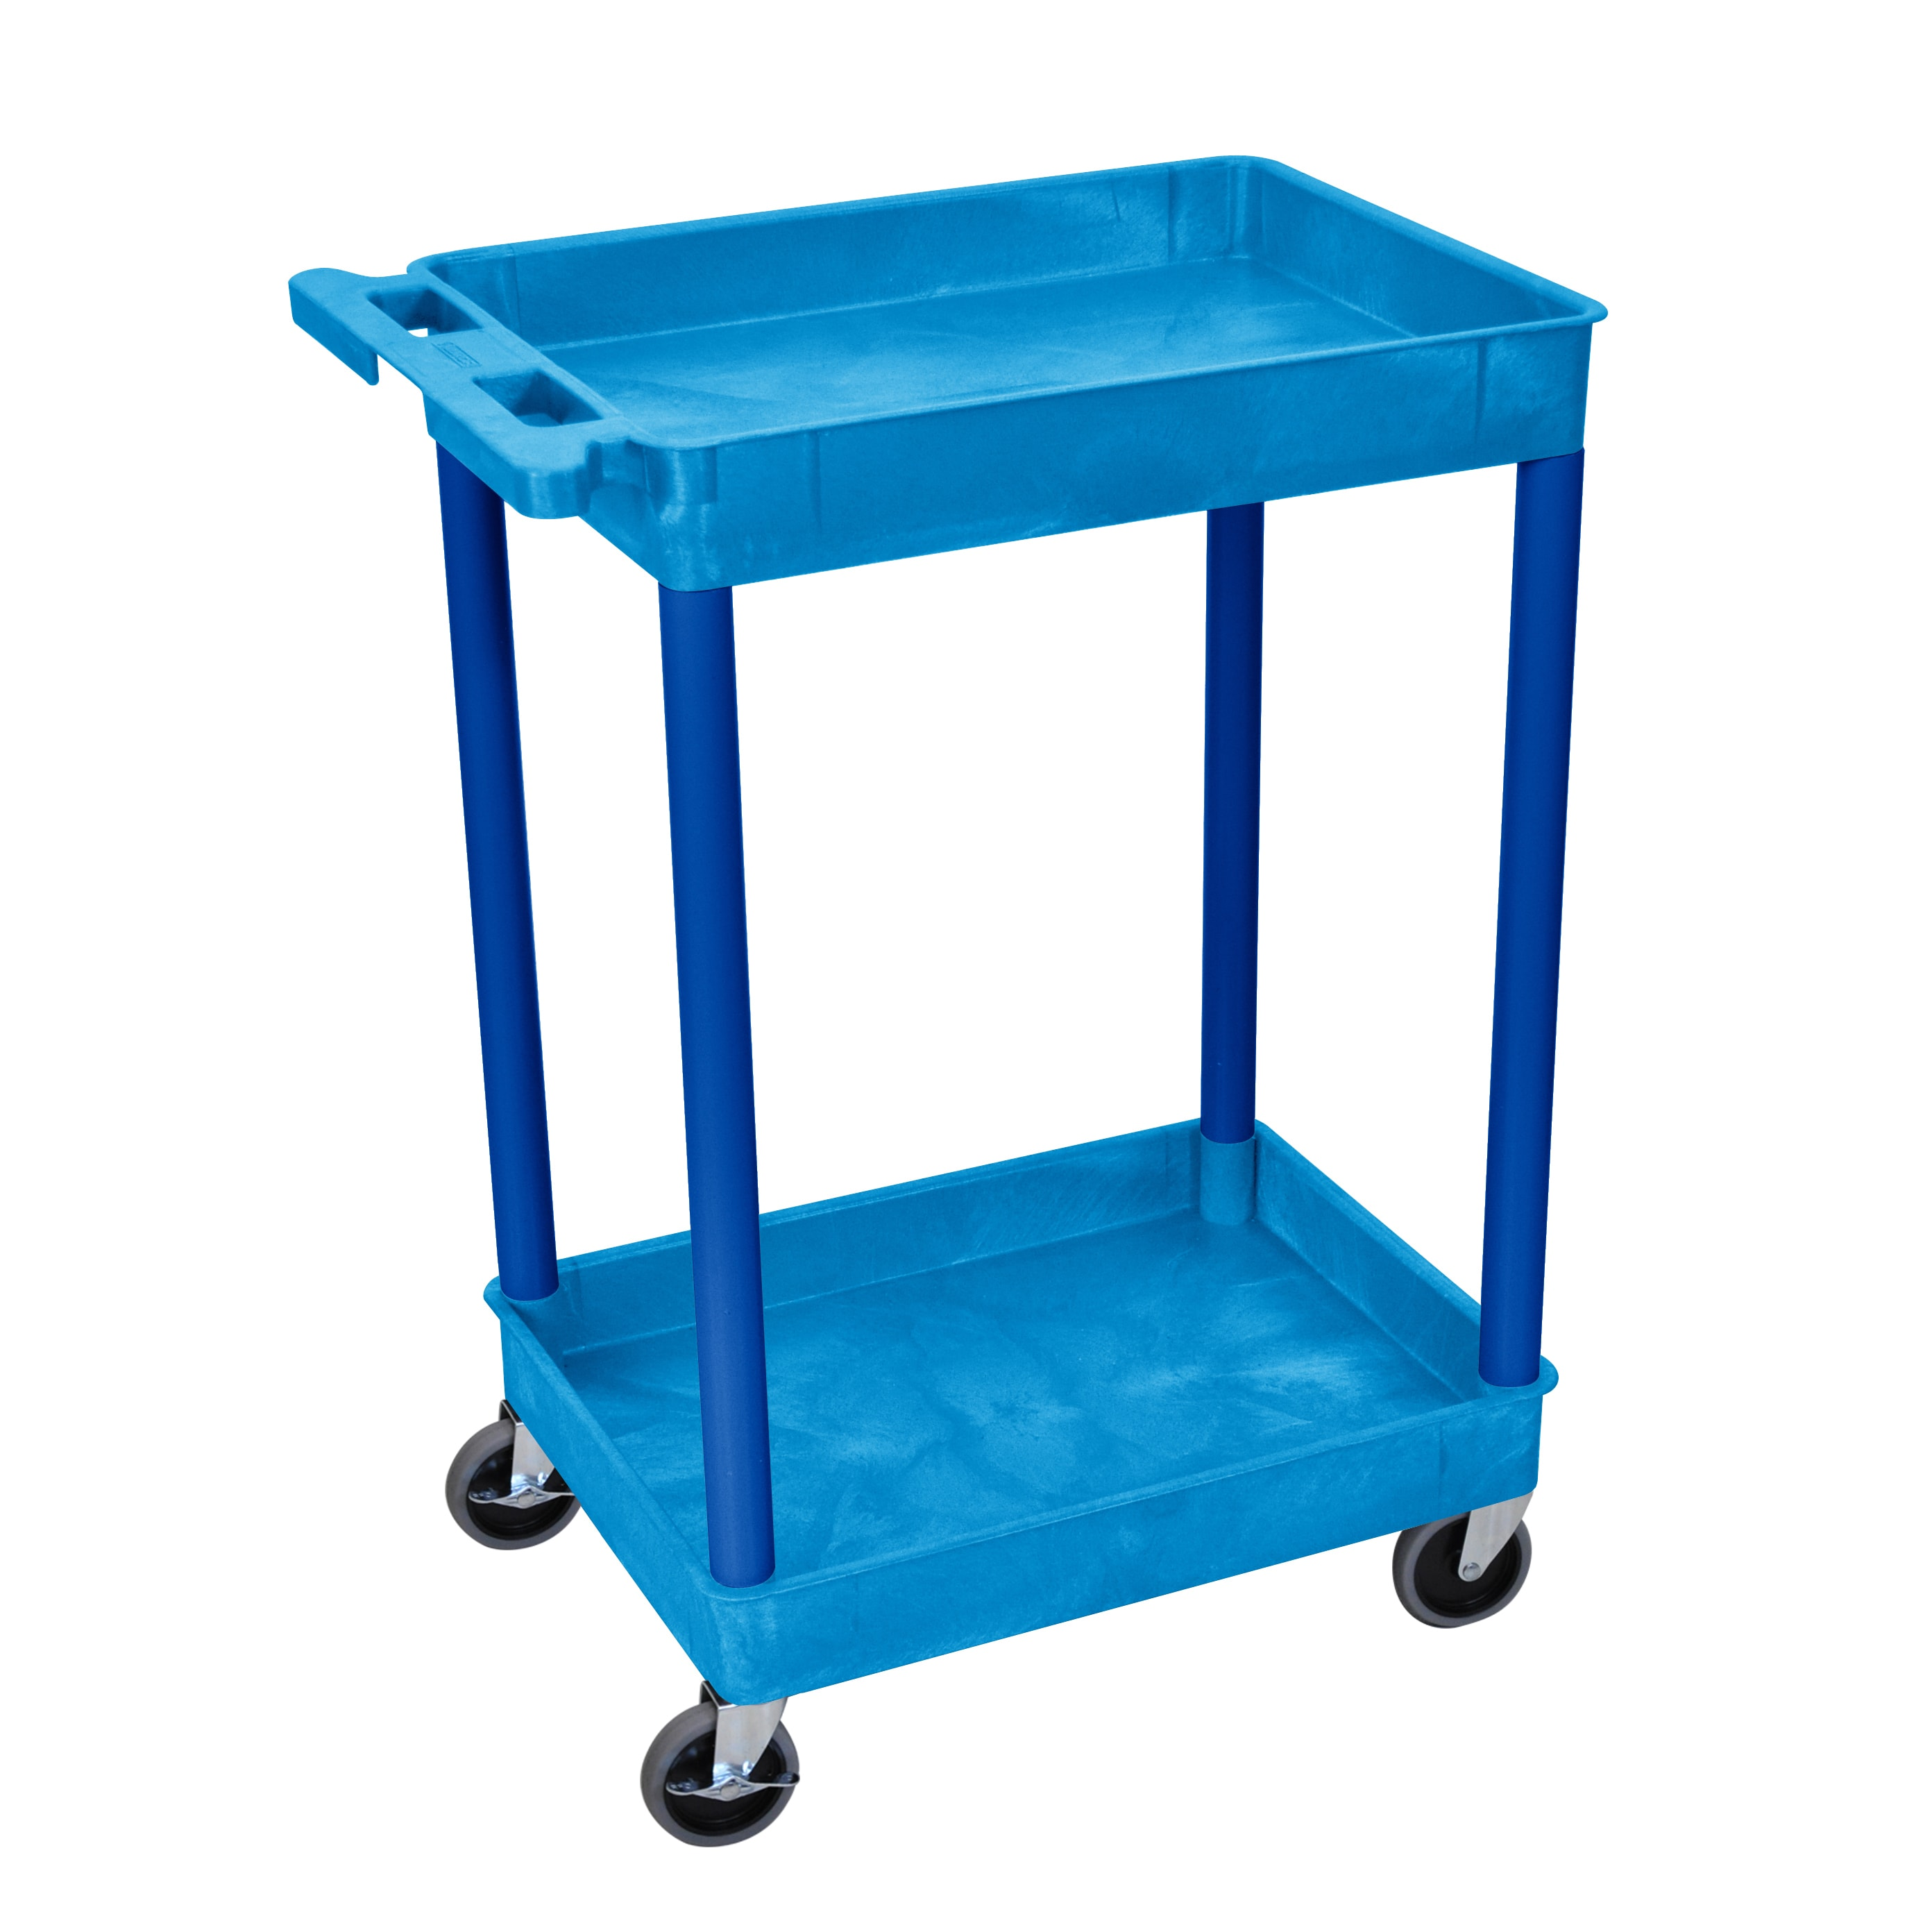 Buy Offex Stands & Carts Online at Overstock.com | Our Best Office ...